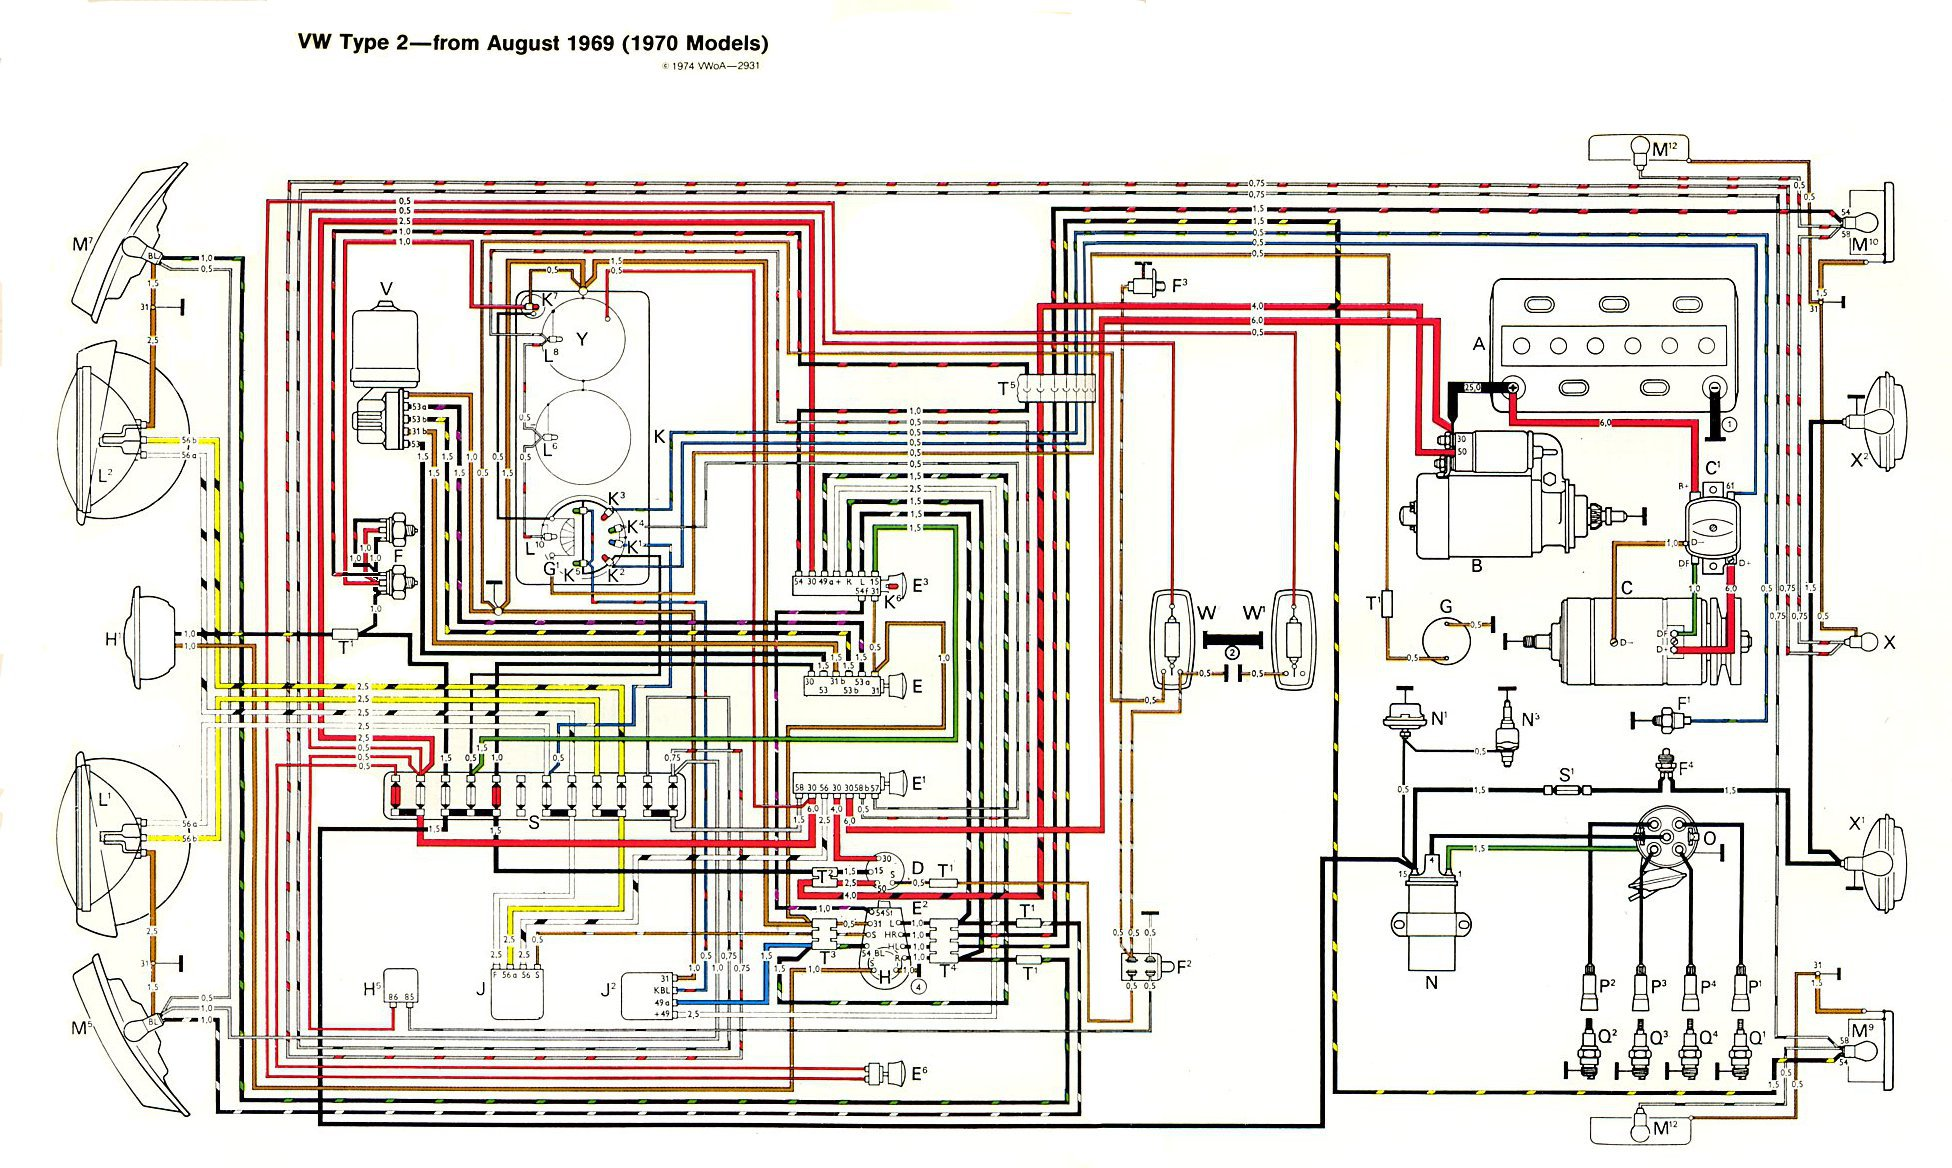 baybus_70 vw mk1 wiring diagram 1971 vw beetle wiring diagram \u2022 wiring vw beetle diagrams at virtualis.co